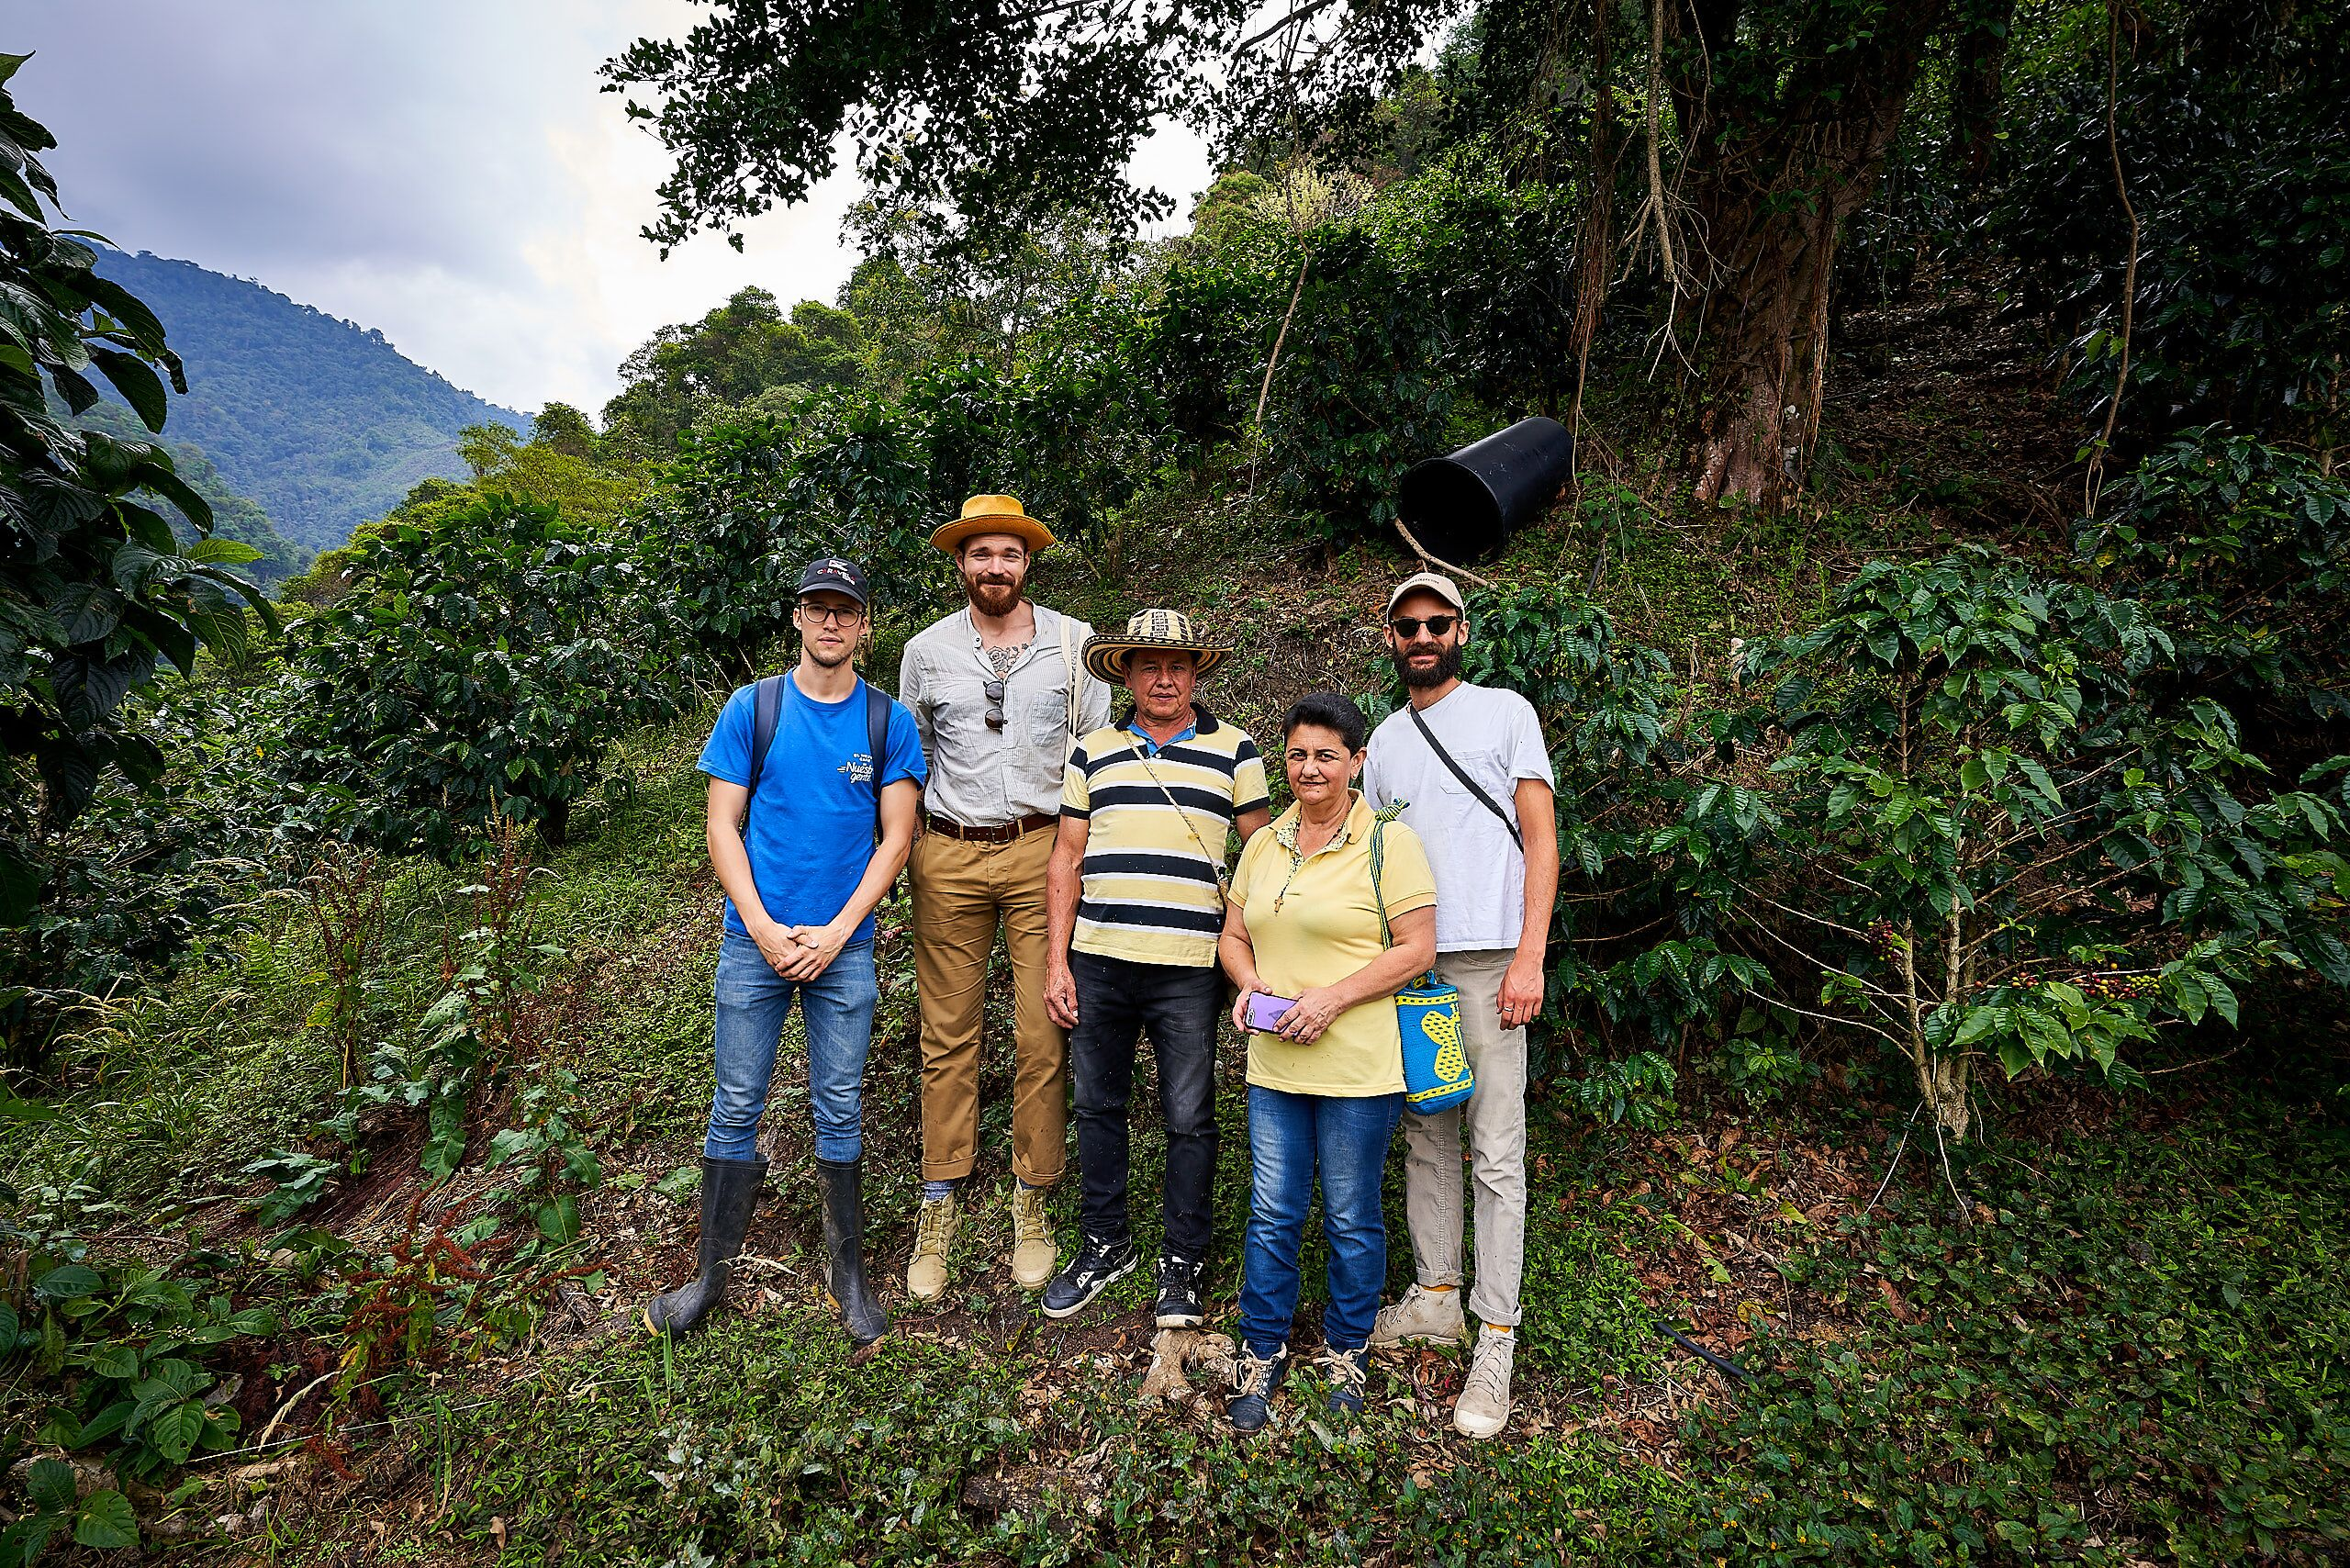 Meeting an Inspirational Farmer Family in the Mountains of Colombia | Enciso